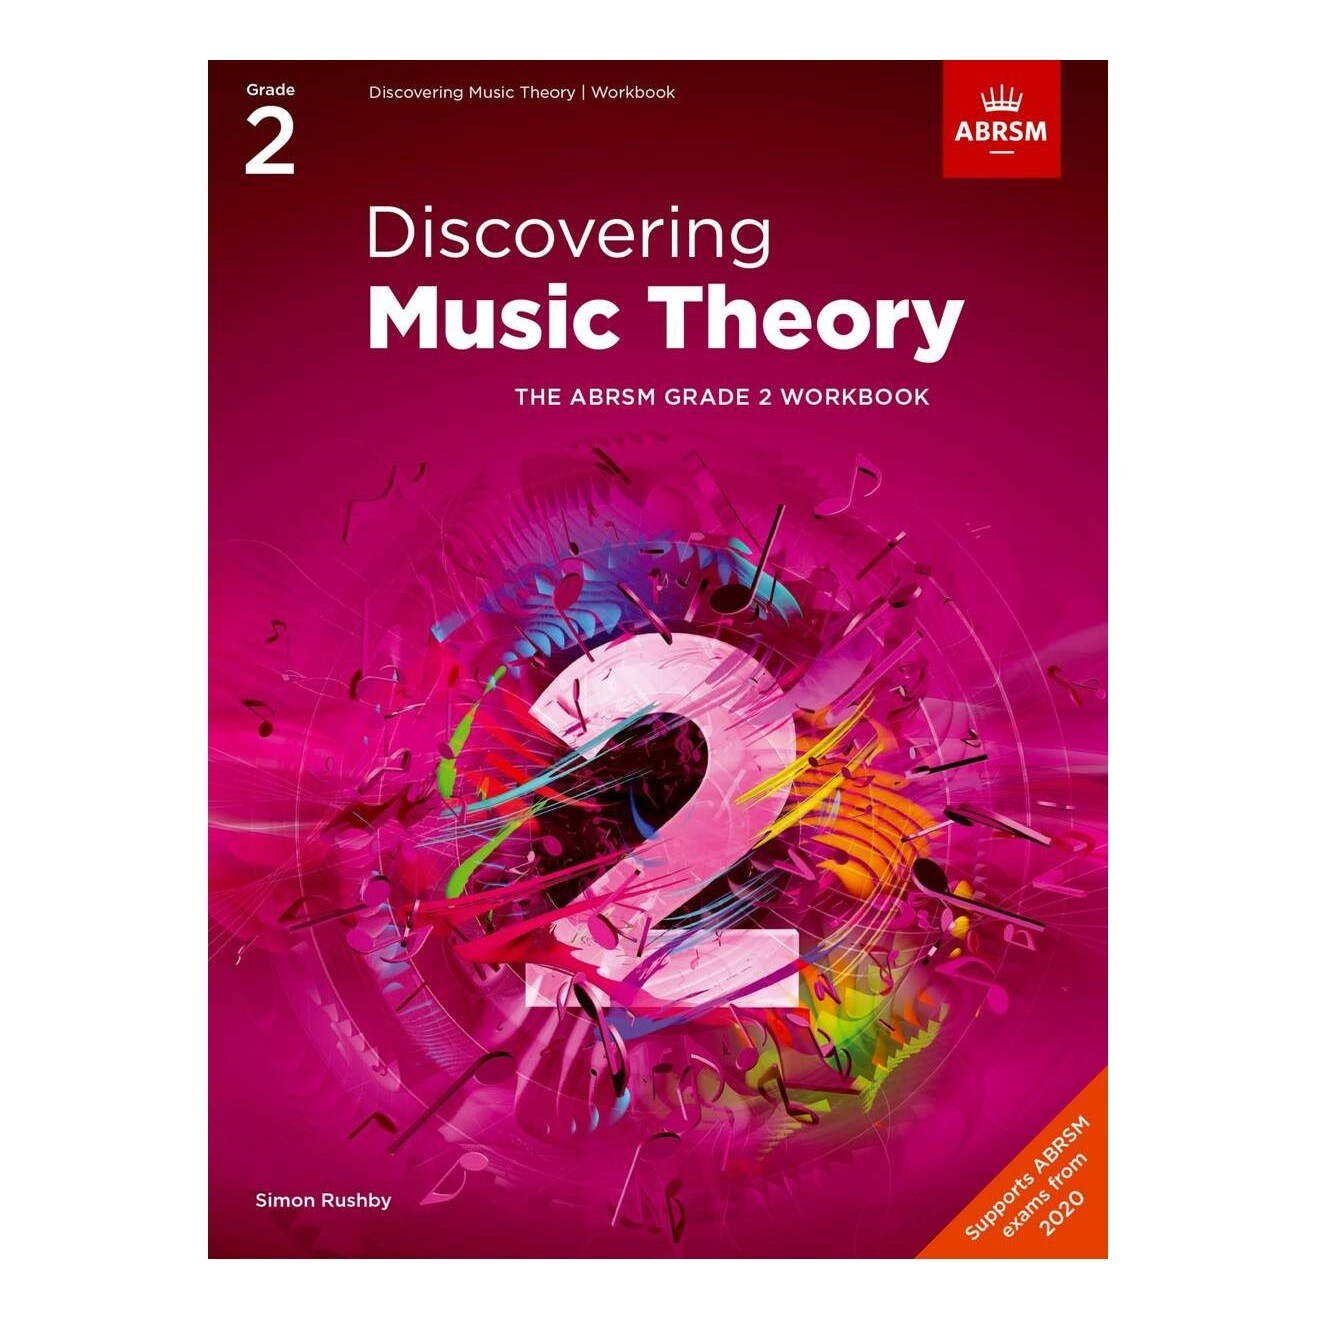 ABRSM Discovering Music Theory Book -  Grade 2